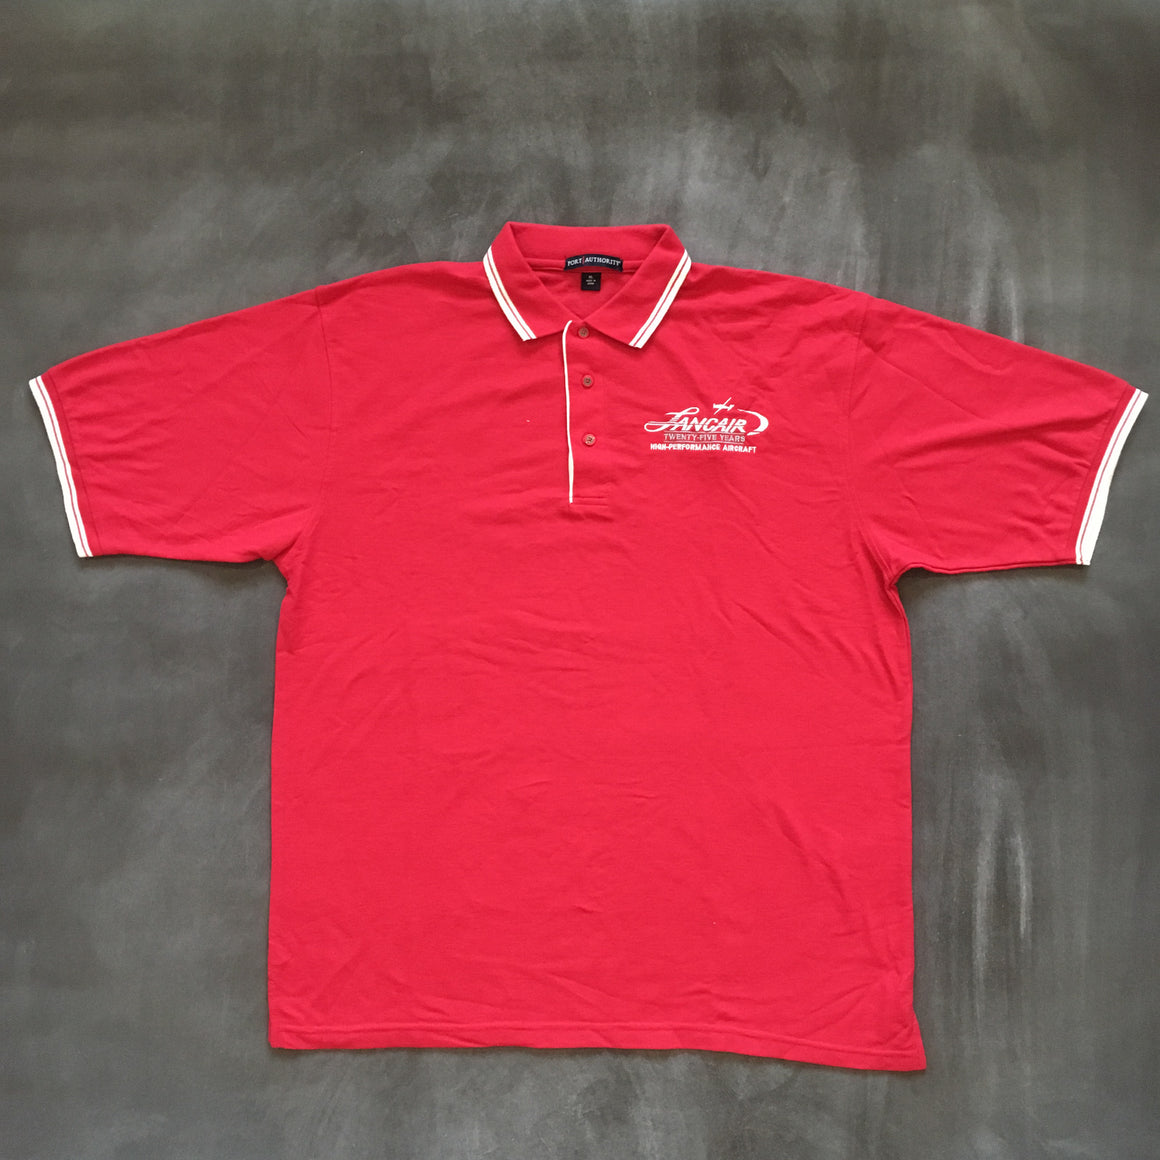 Men's 25th Anniversary Polo - FLASH SALE